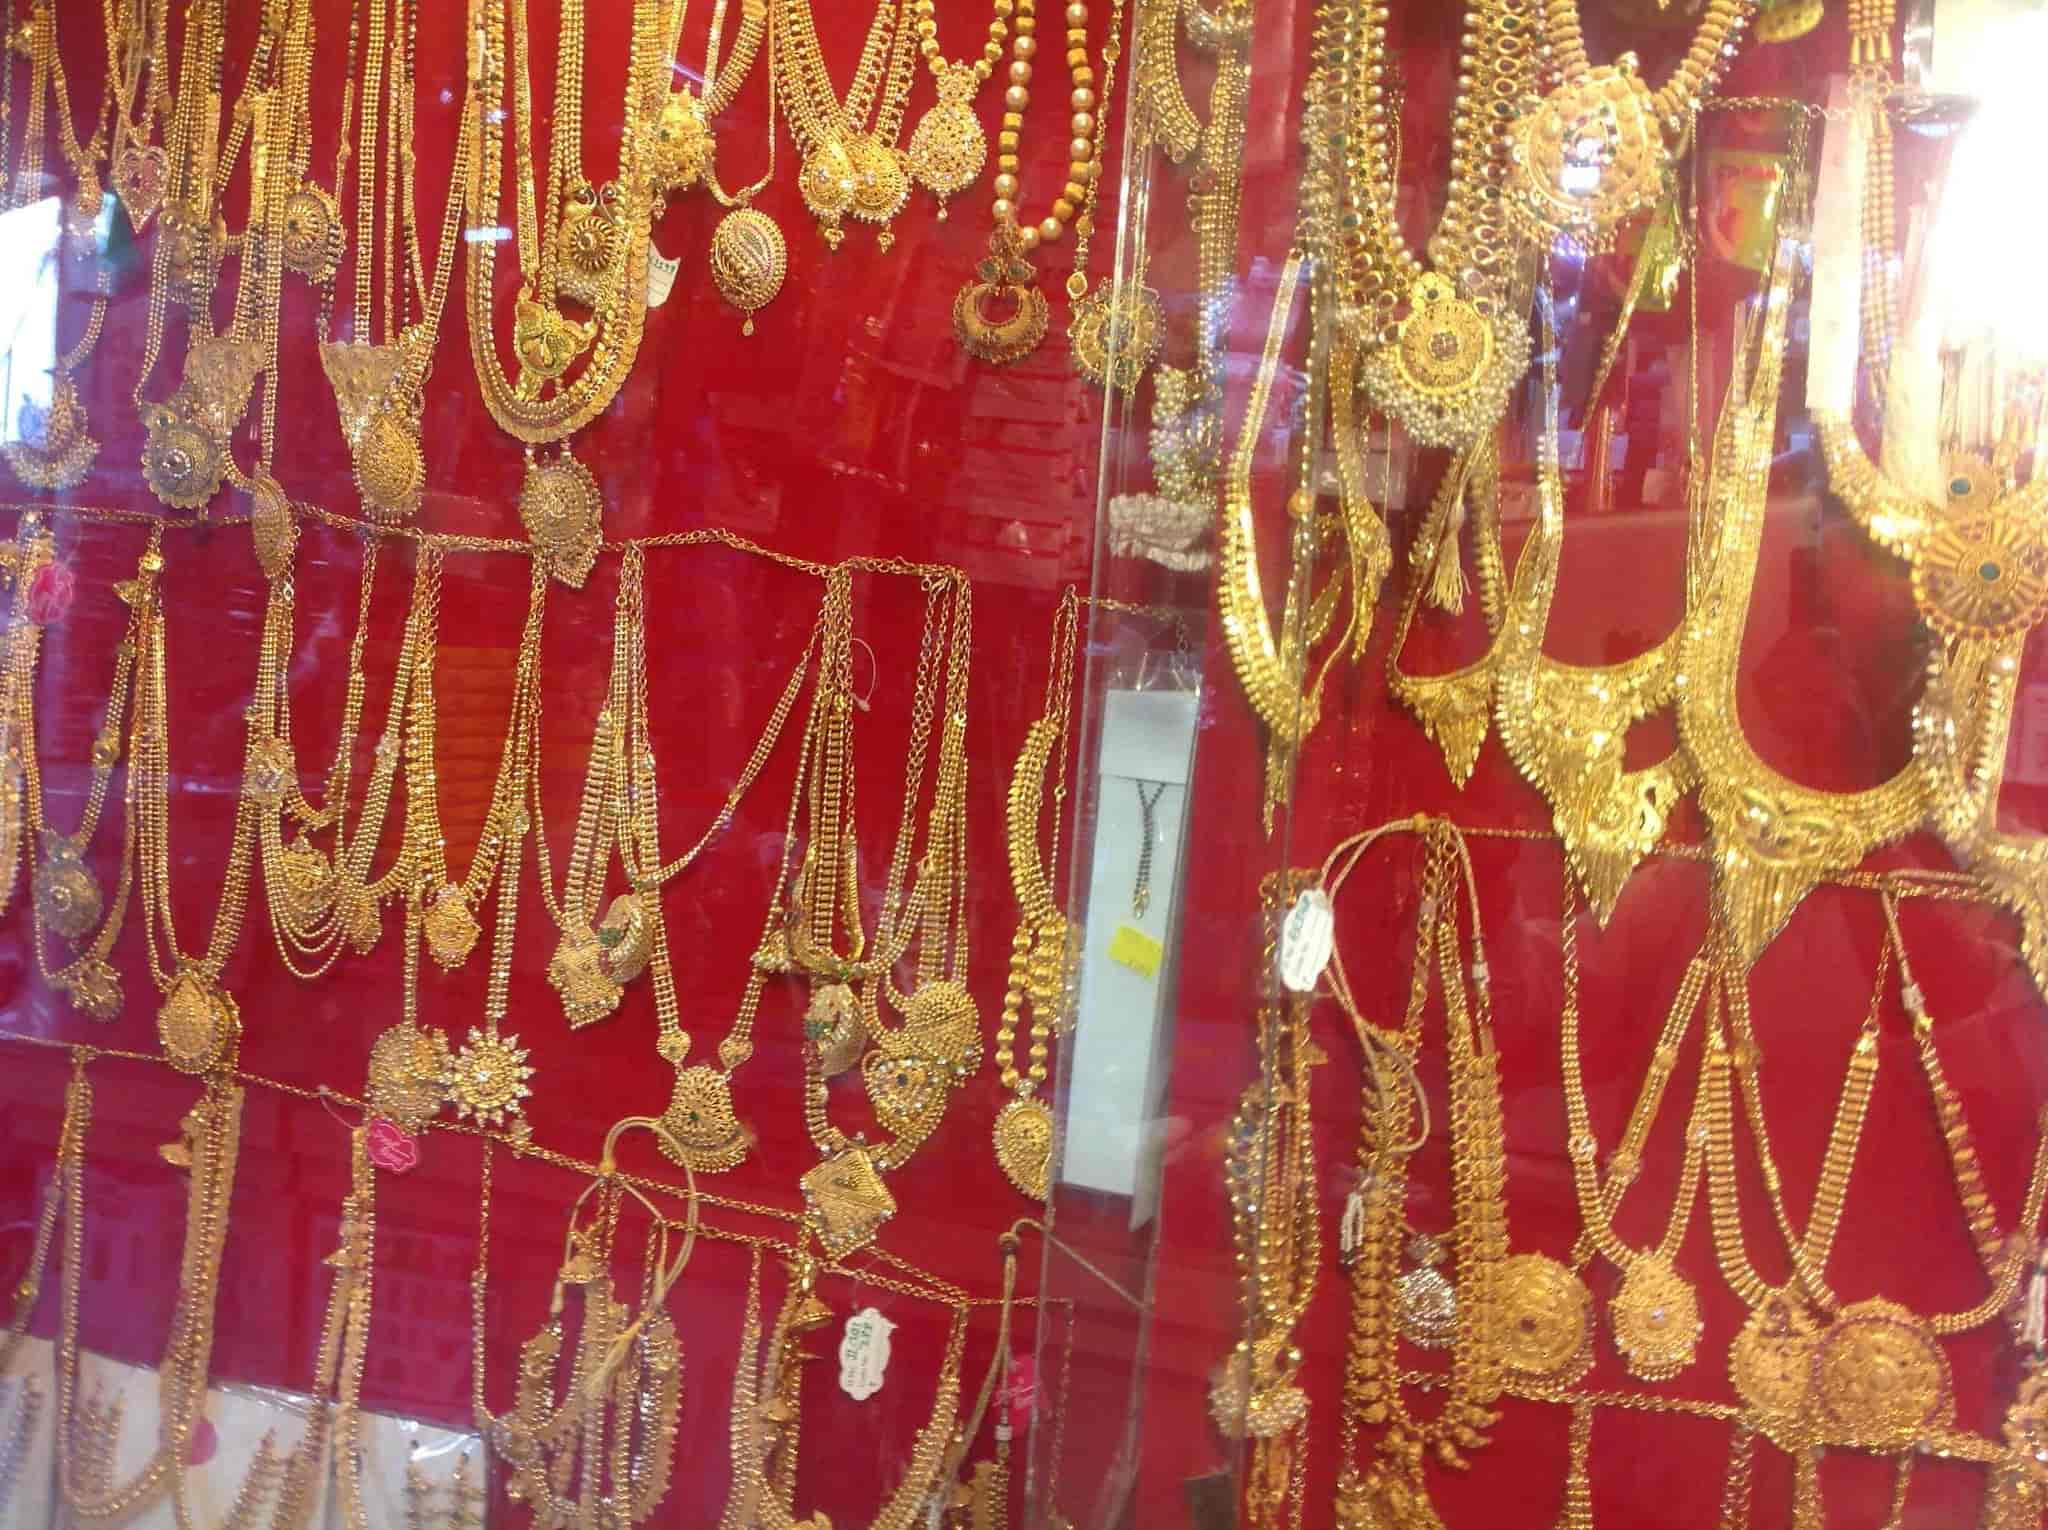 New Priya One Gram Gold Jewellery Photos, Chintamani Bazar